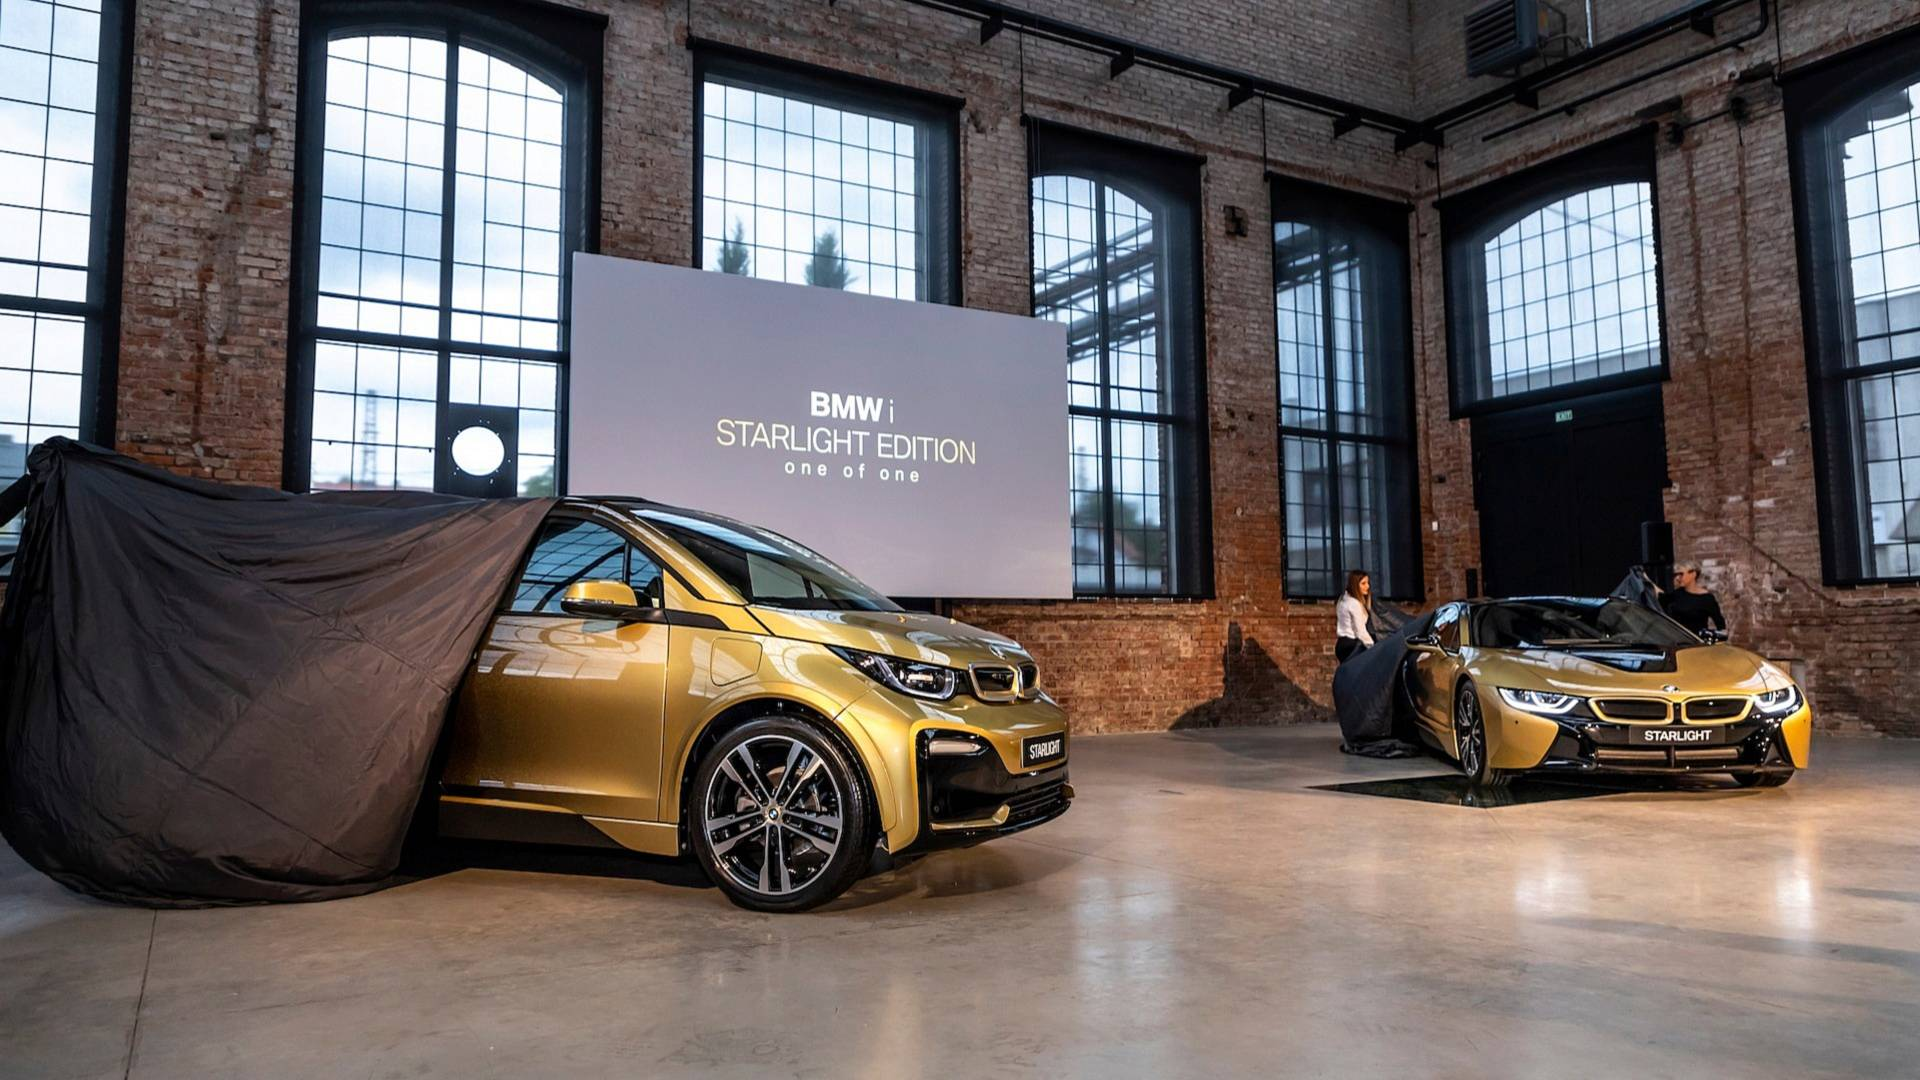 Flashy BMW i3 And i8 Starlight Edition Feature 24 Carat Gold Dust